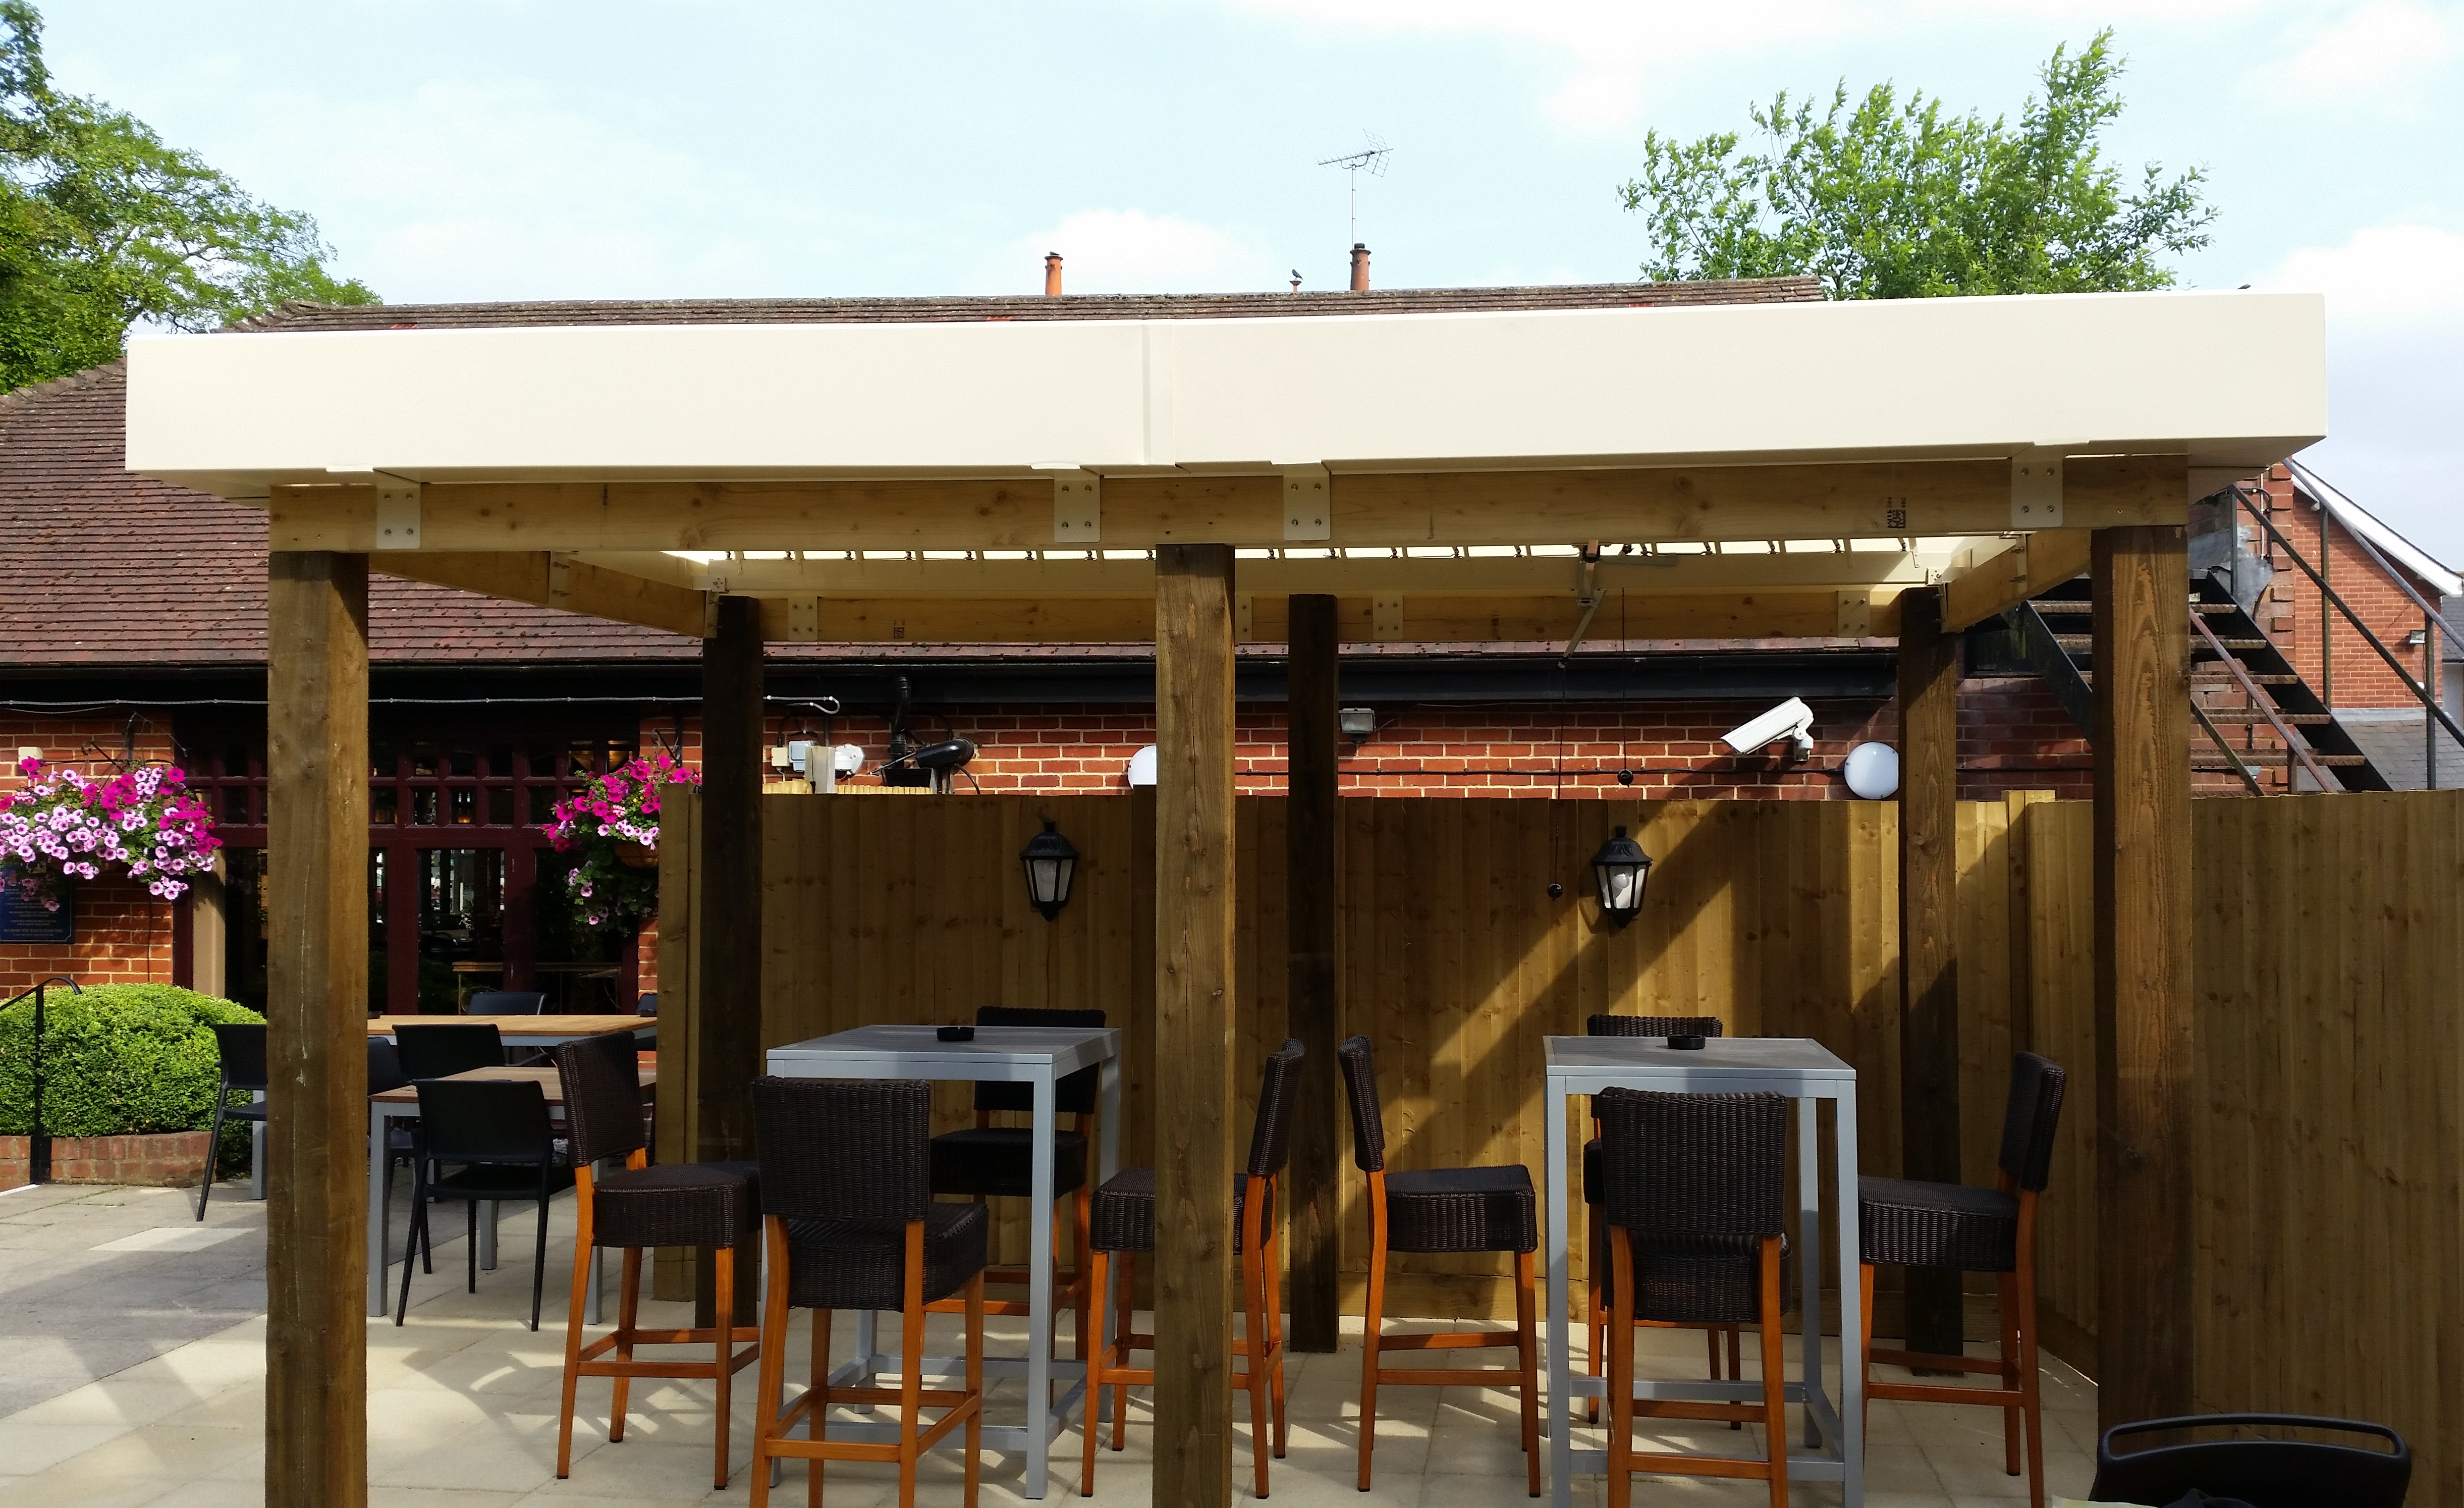 21a Pubrestaurant, Fleet, Hampshire   Outdoor Commercial Drinking And  Dining Area ...